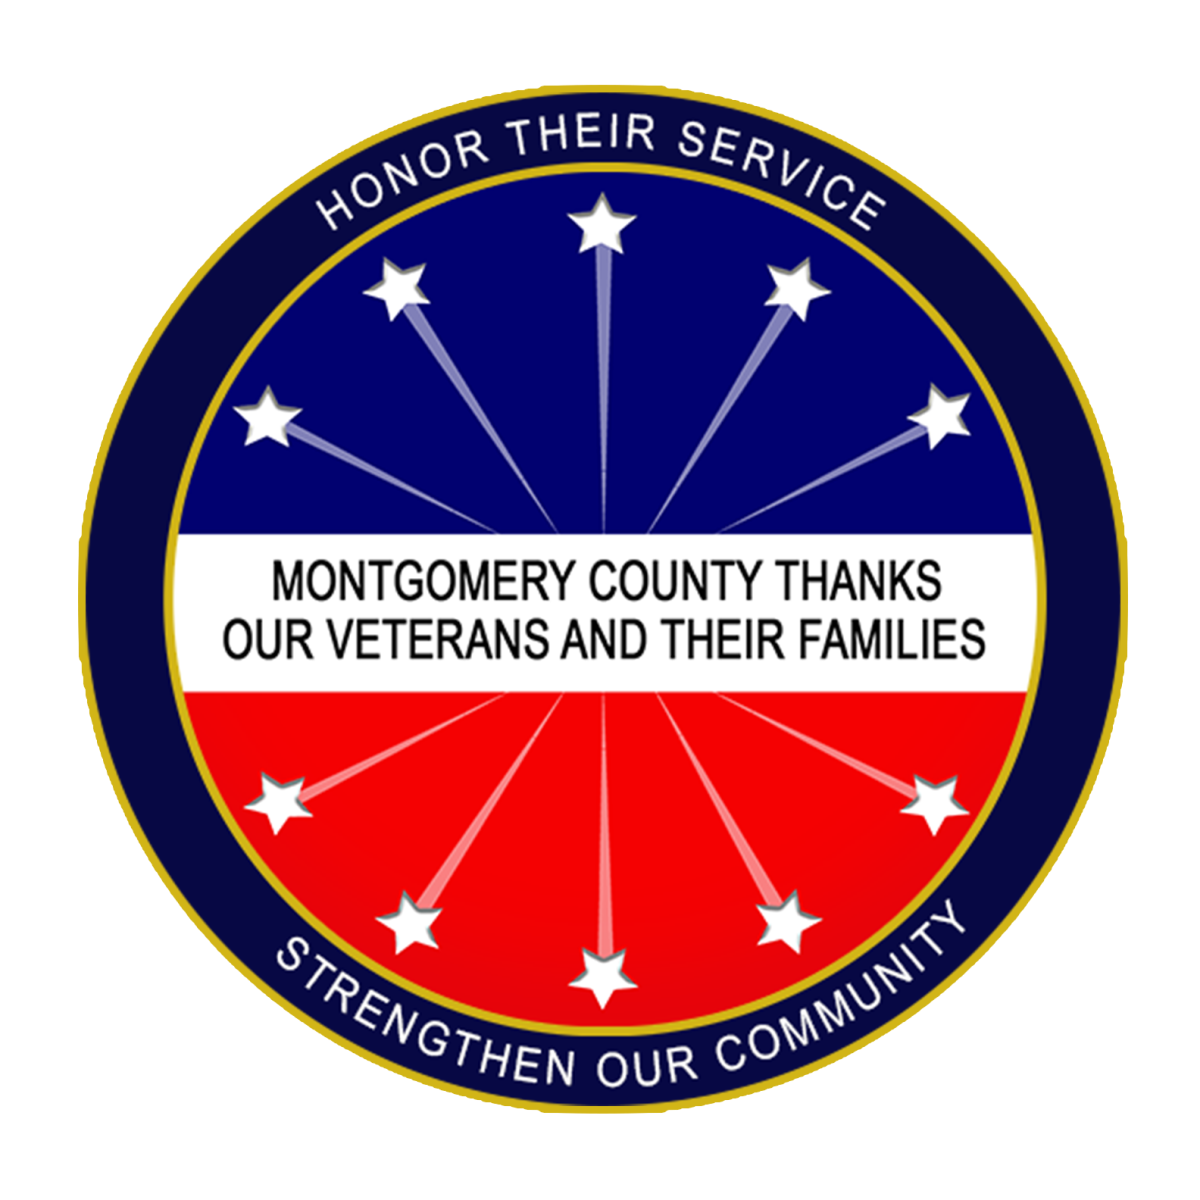 Montgomery County Thanks Our Veterans and Their Families - Honor Their Service; Strengthen Our Community